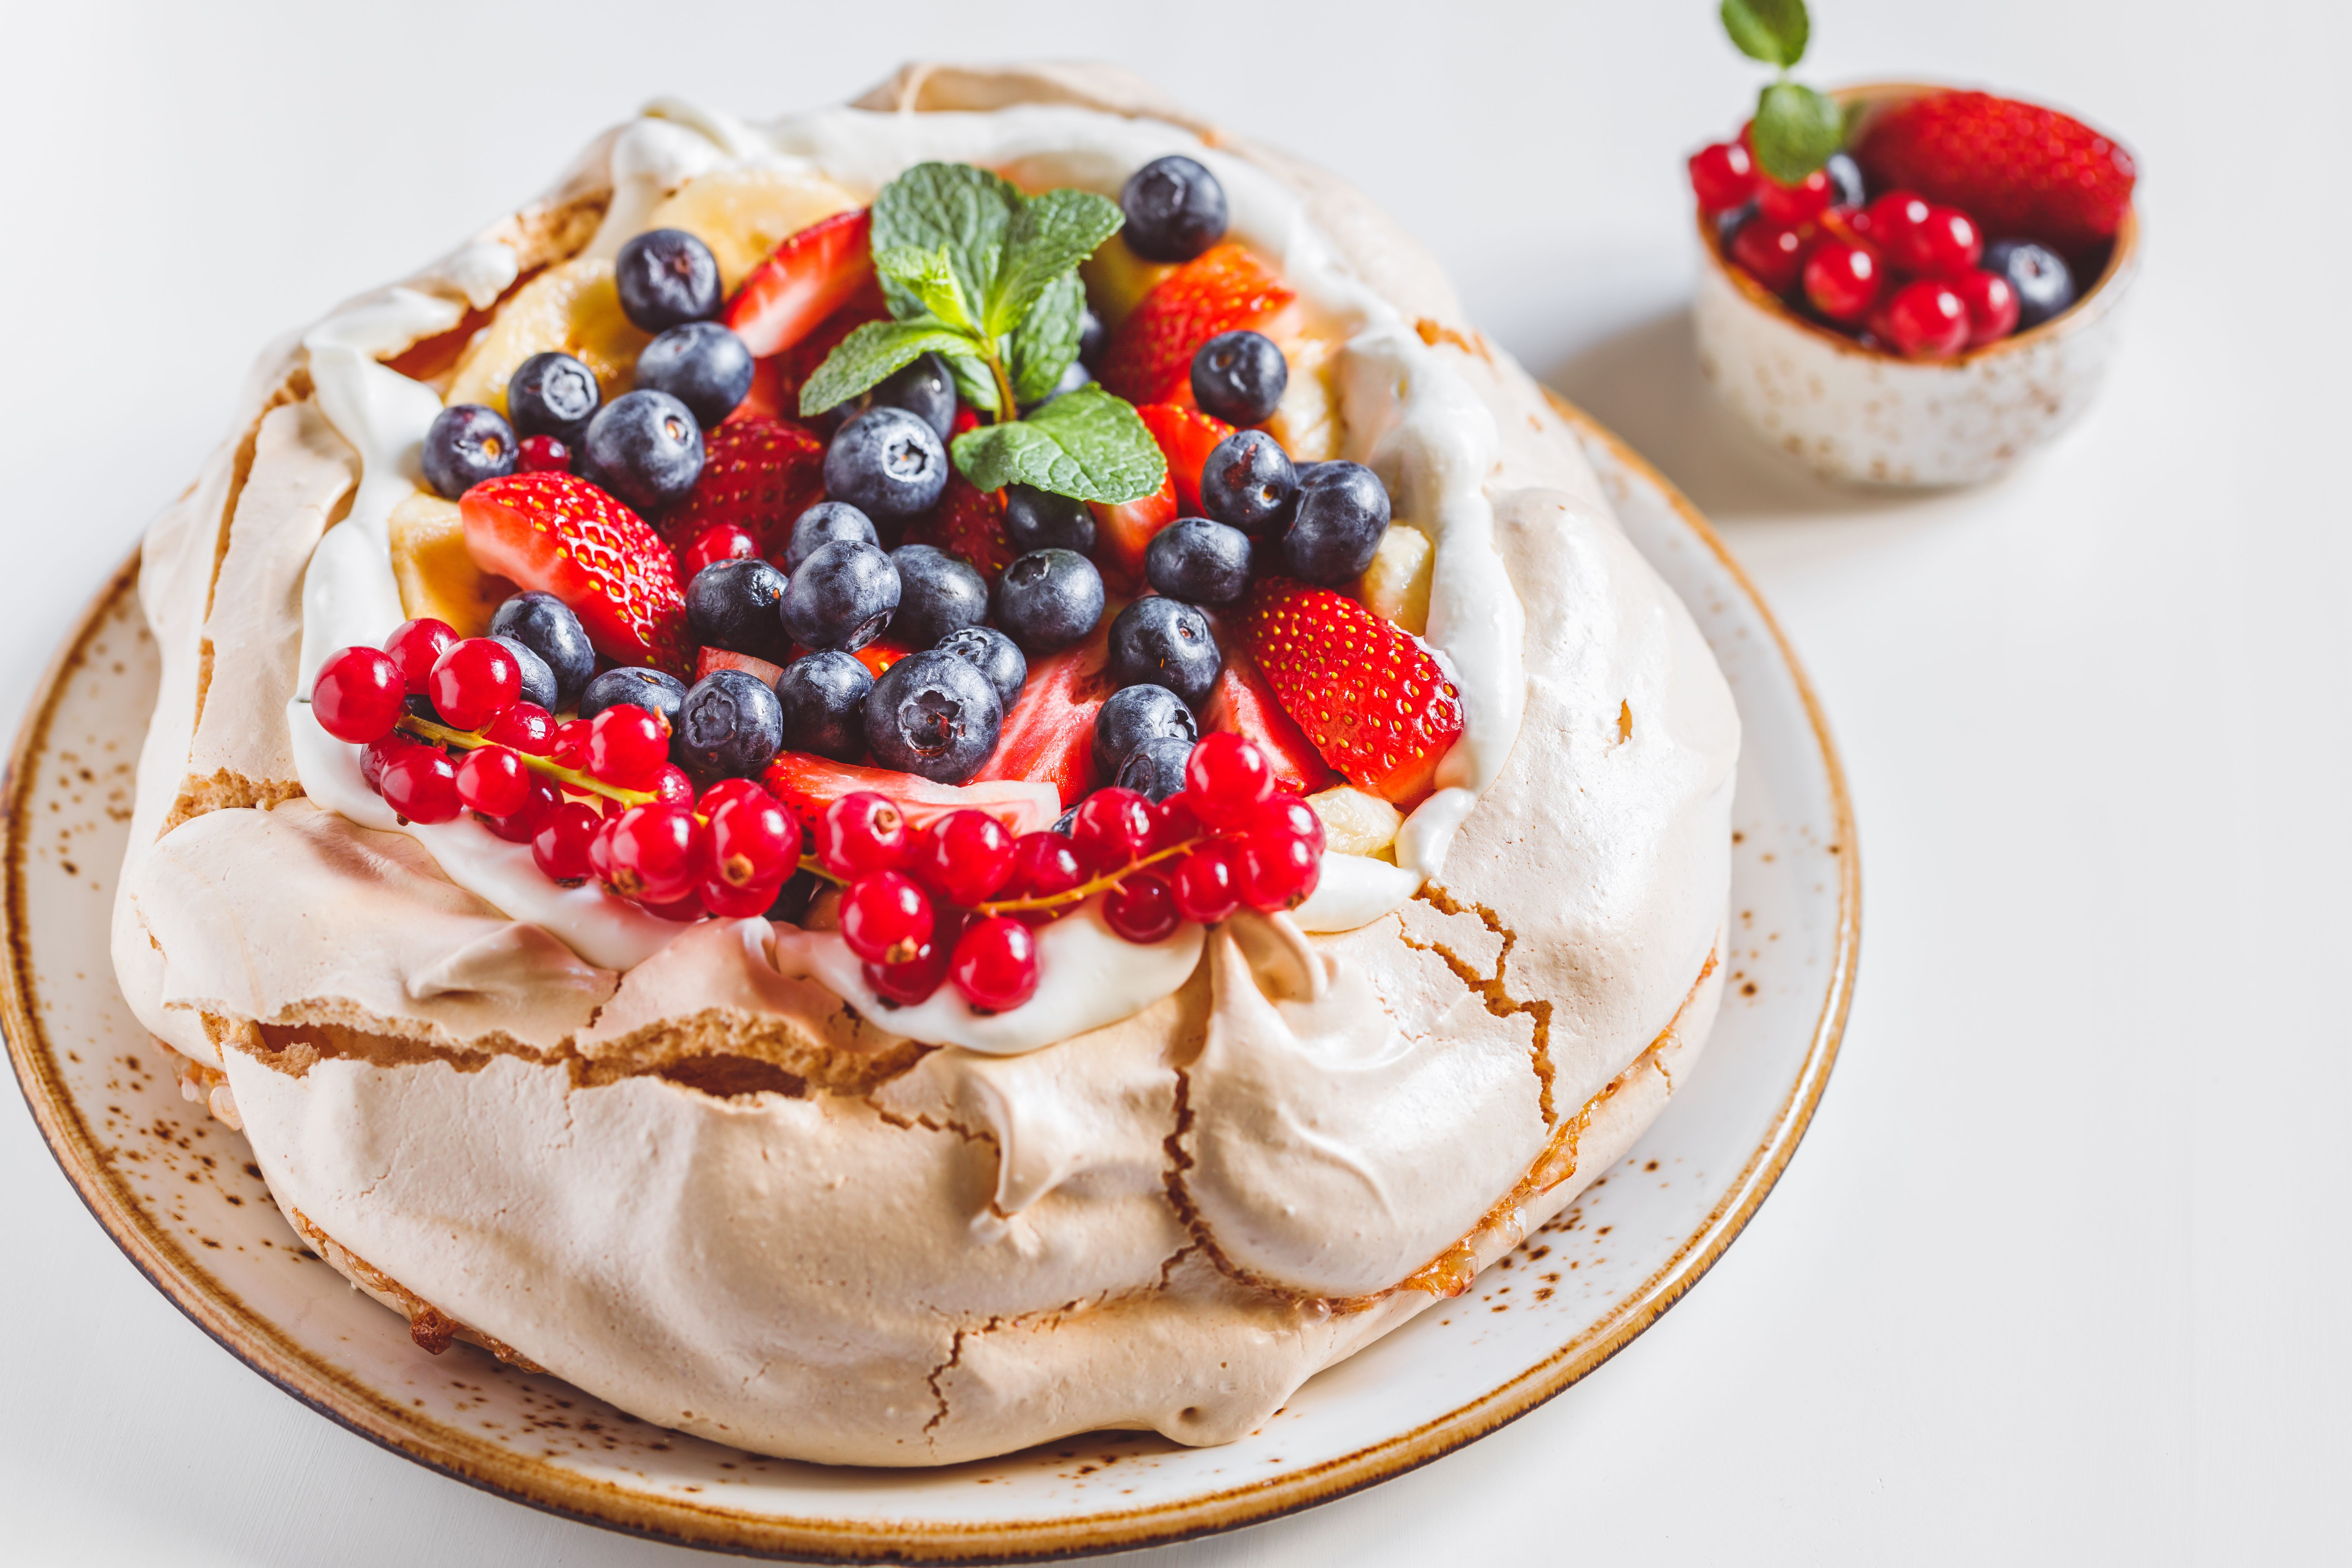 37 Healthy Dessert Recipes Low Calorie Low Fat Vegan And More